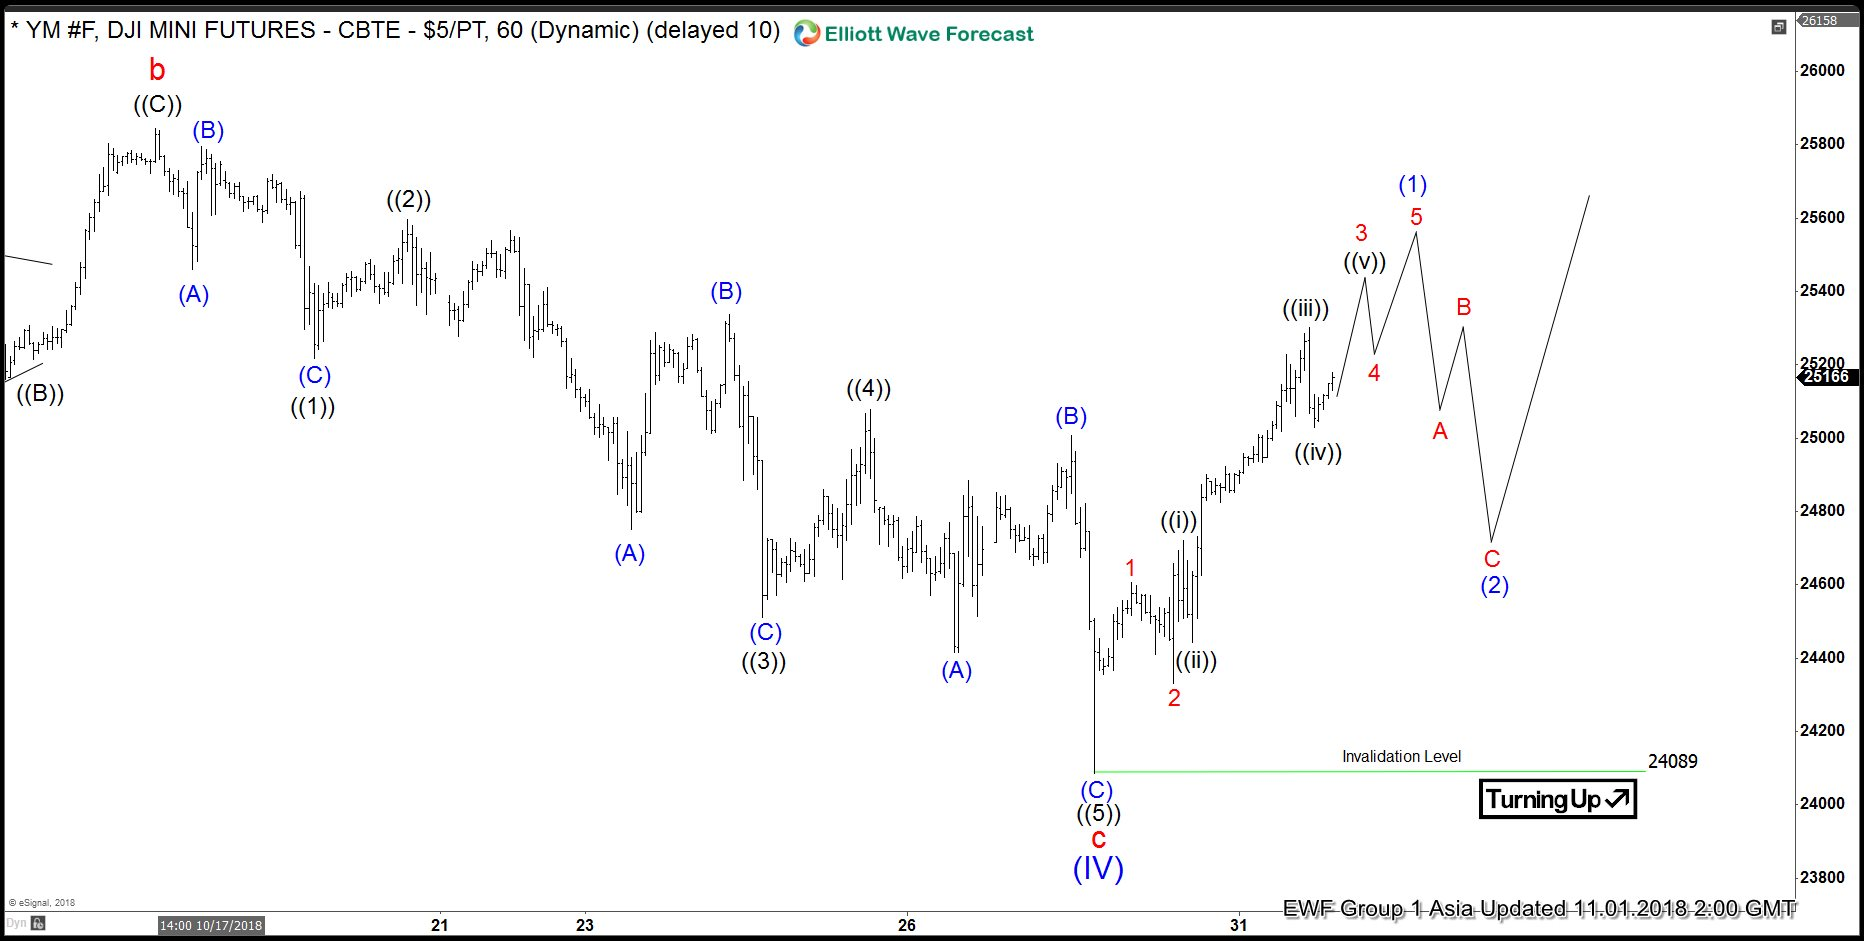 Dow Jones Elliott Wave View: Correction Completed